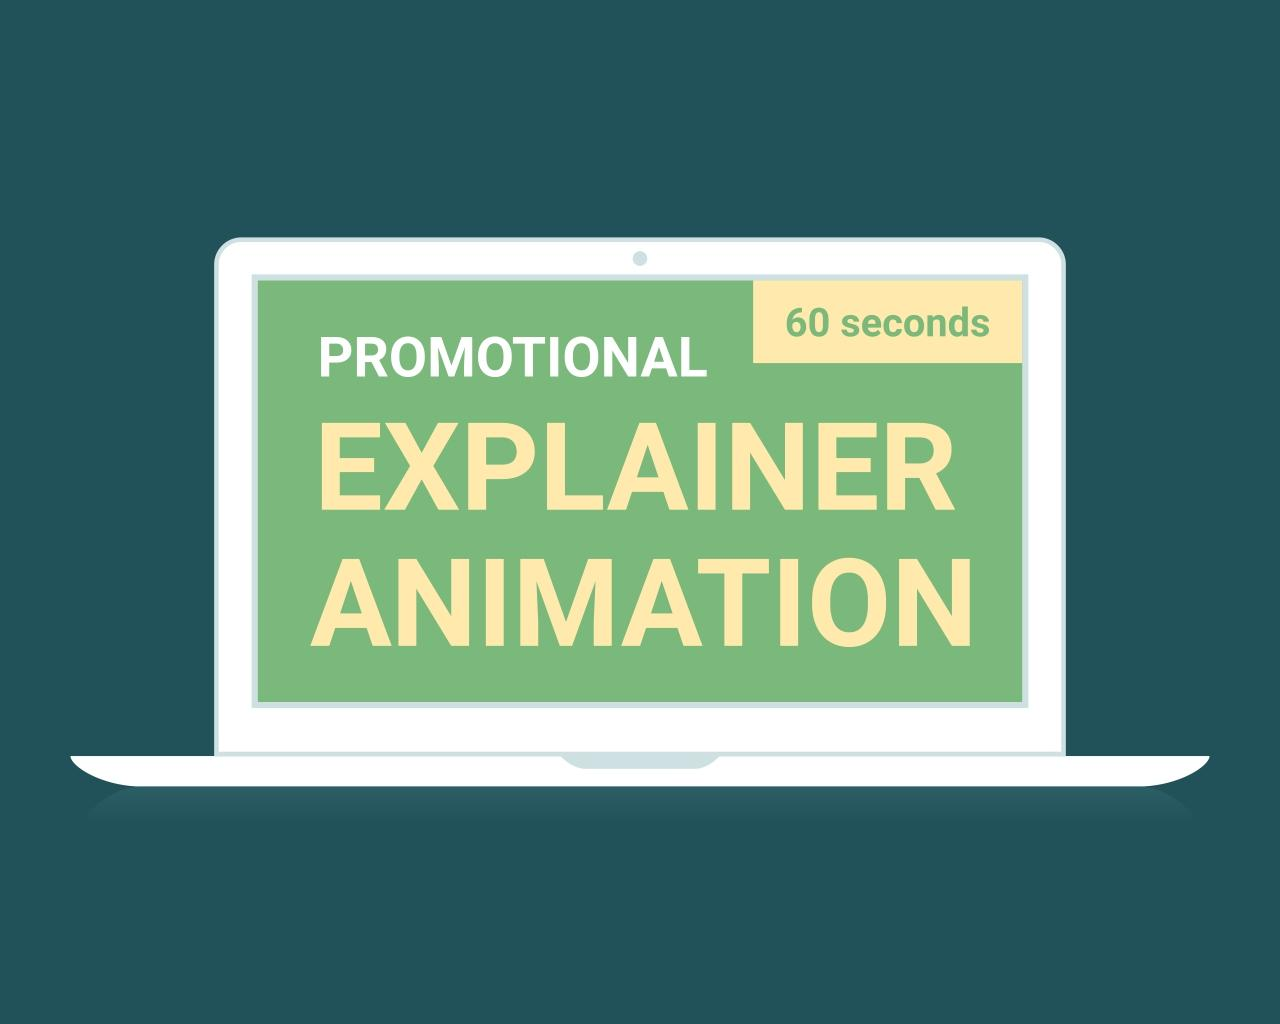 Promotional Explainer Animation by aleksandr-mansurov-ru - 104921